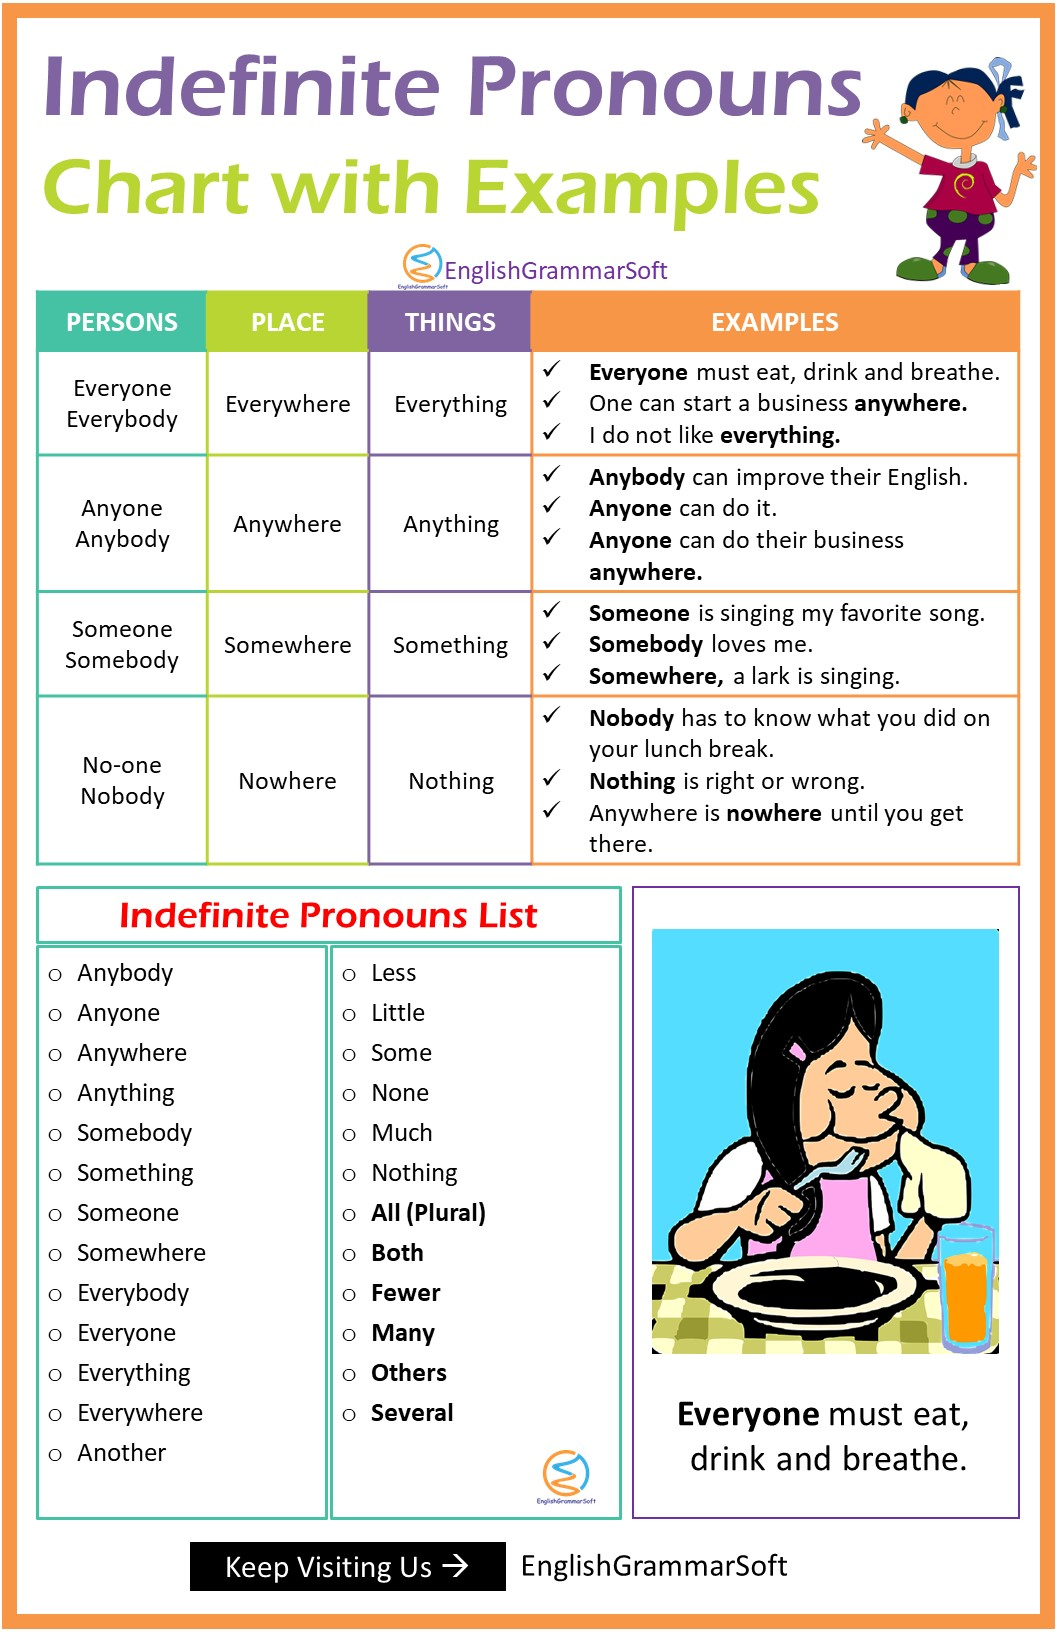 Indefinite Pronouns with Examples, List & Chart